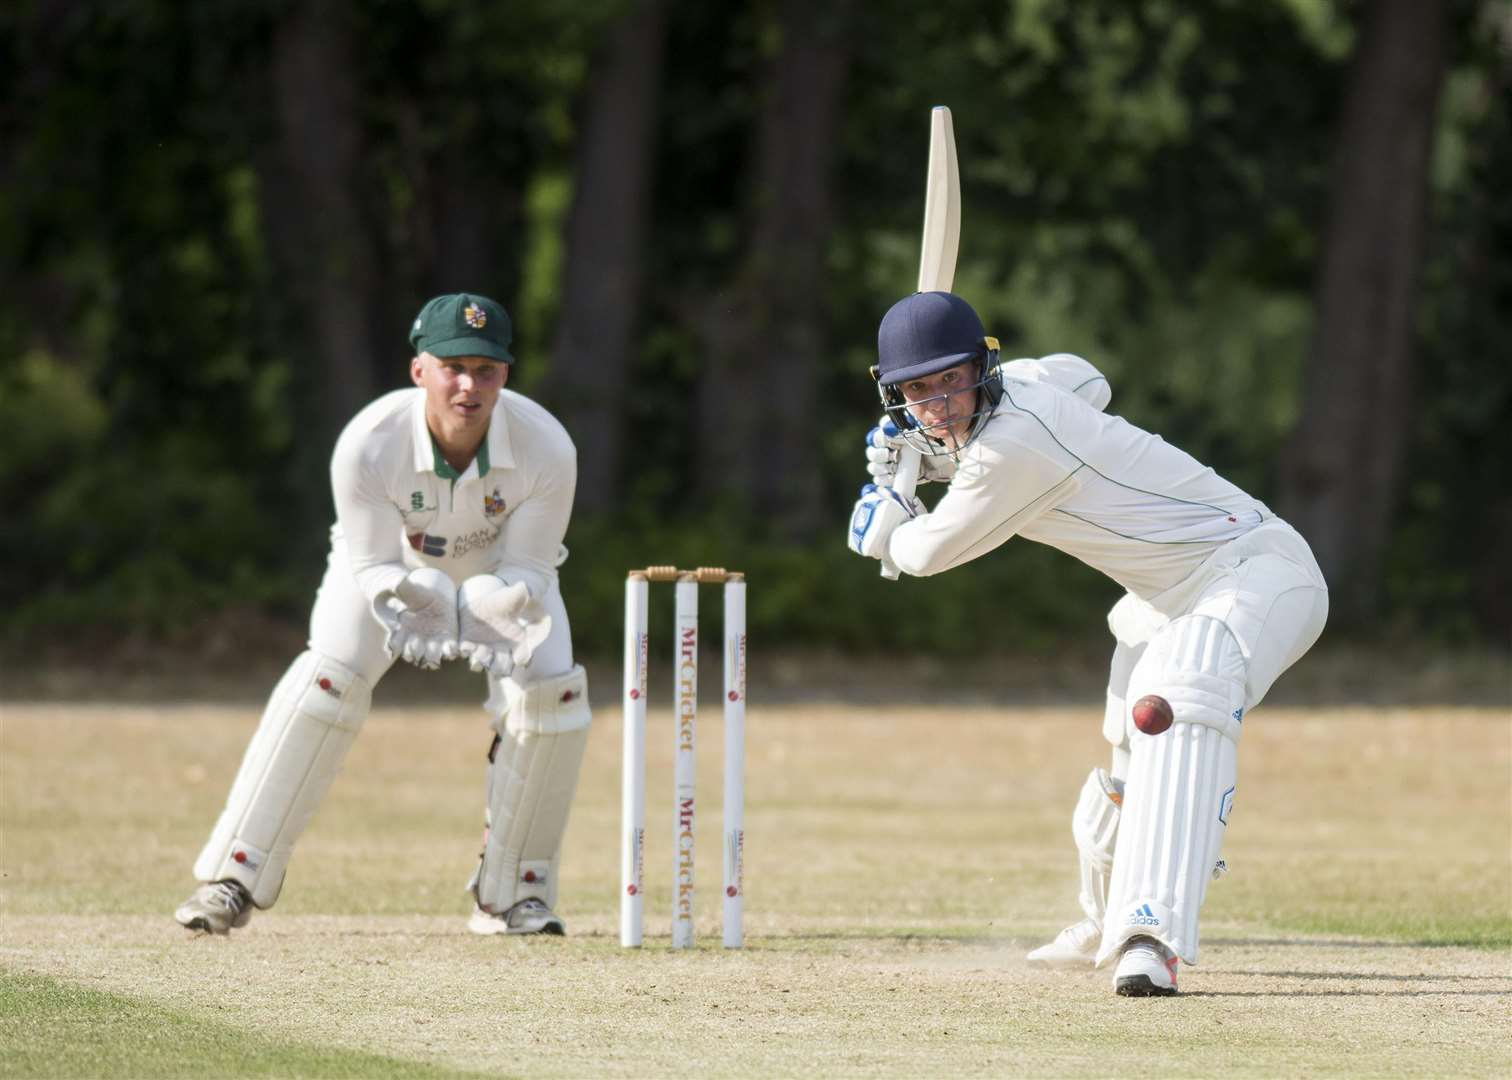 CRICKET: Burwell & Exning v Horsford Andrew Bramley Picture Mark Westley. (2930810)